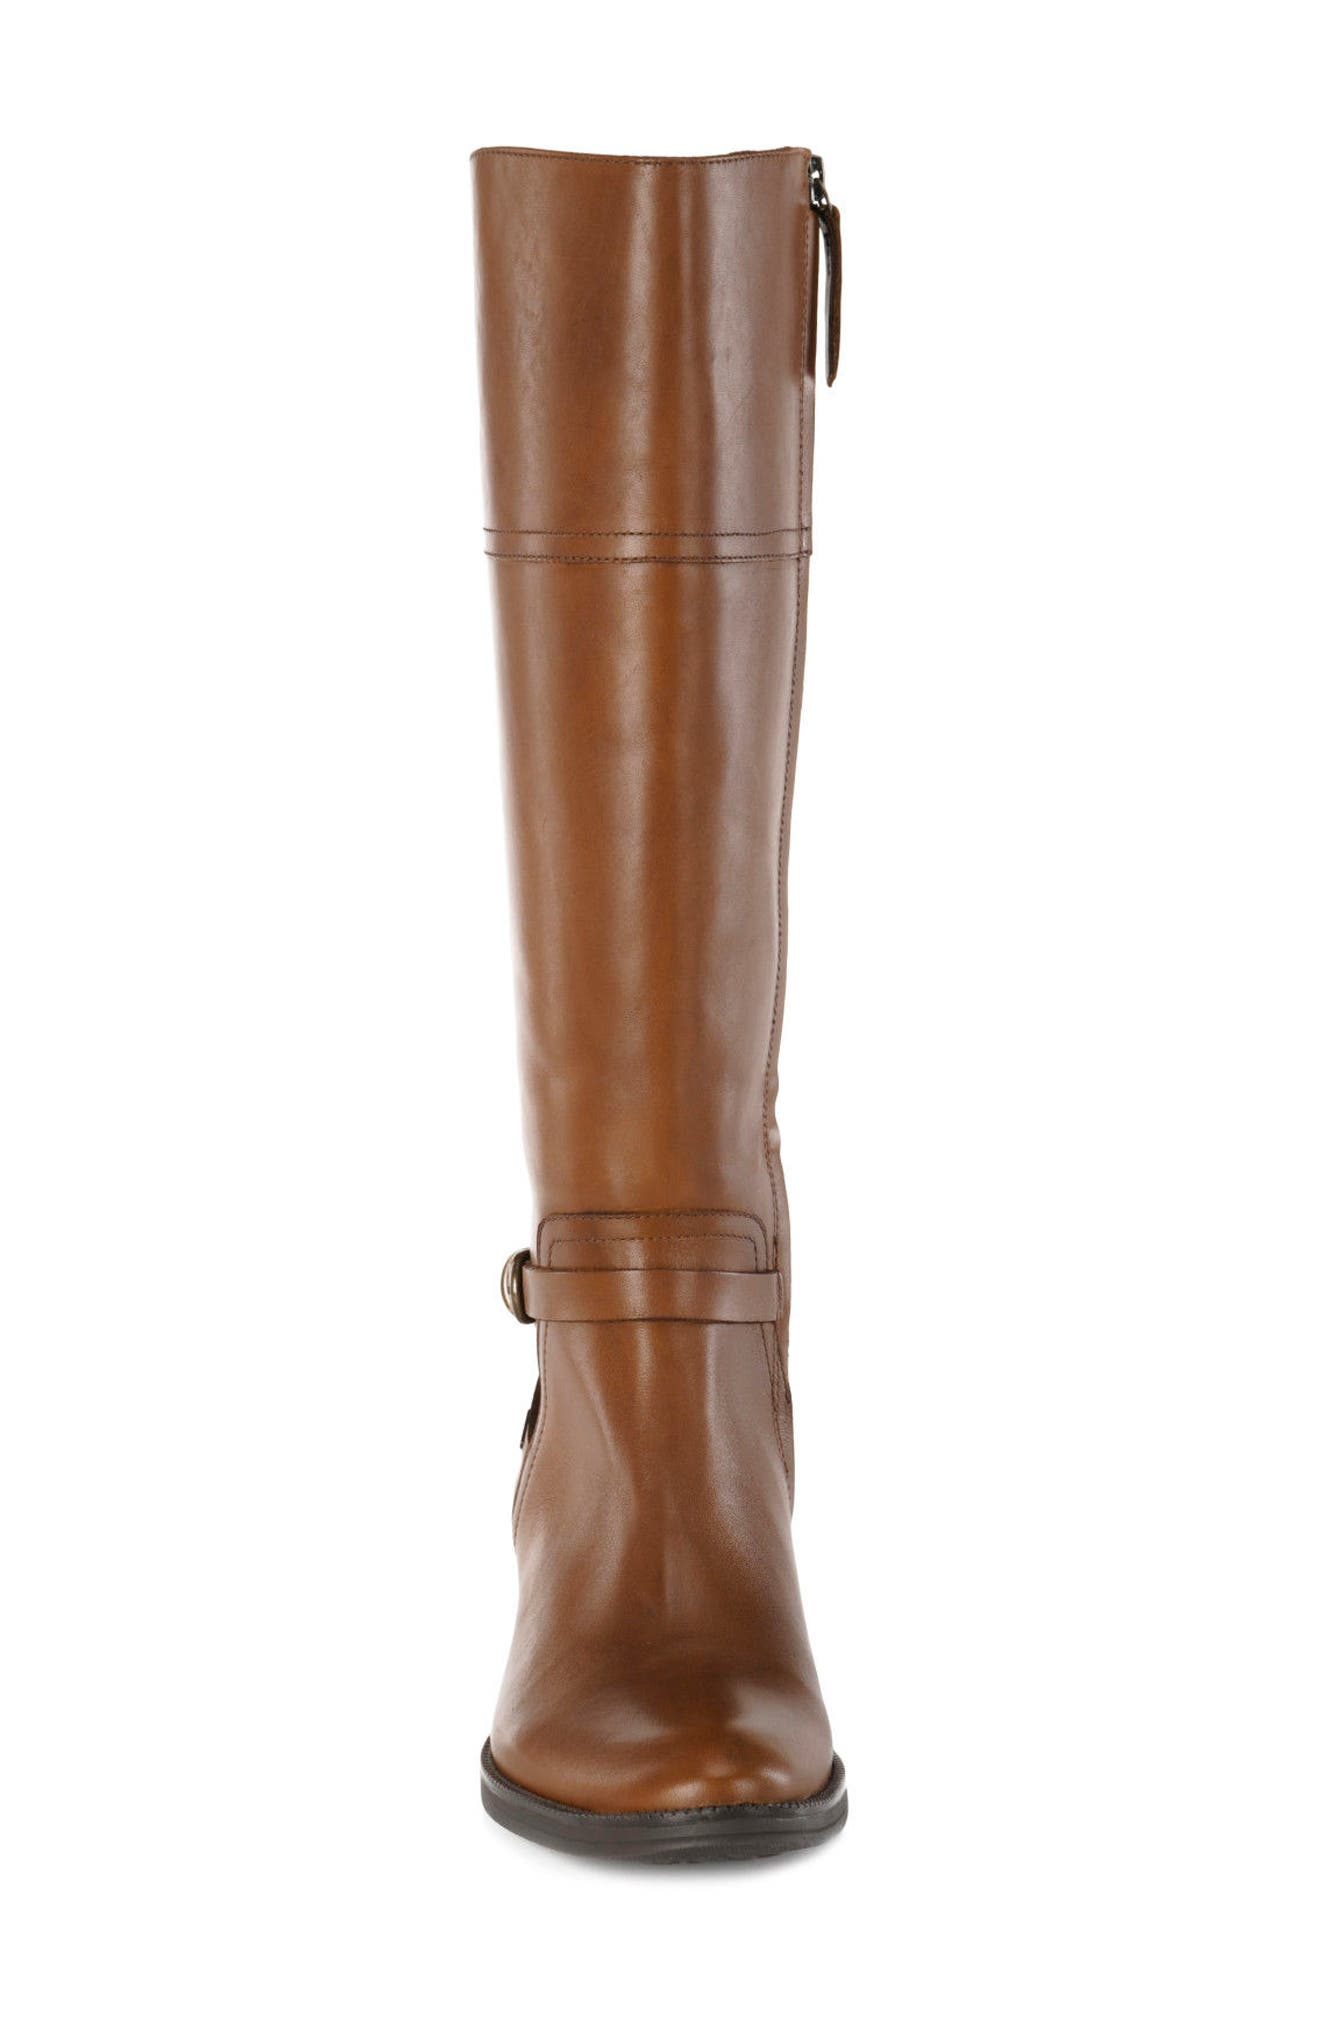 Mendin ABX Waterproof Riding Boot,                             Alternate thumbnail 4, color,                             Brown Leather